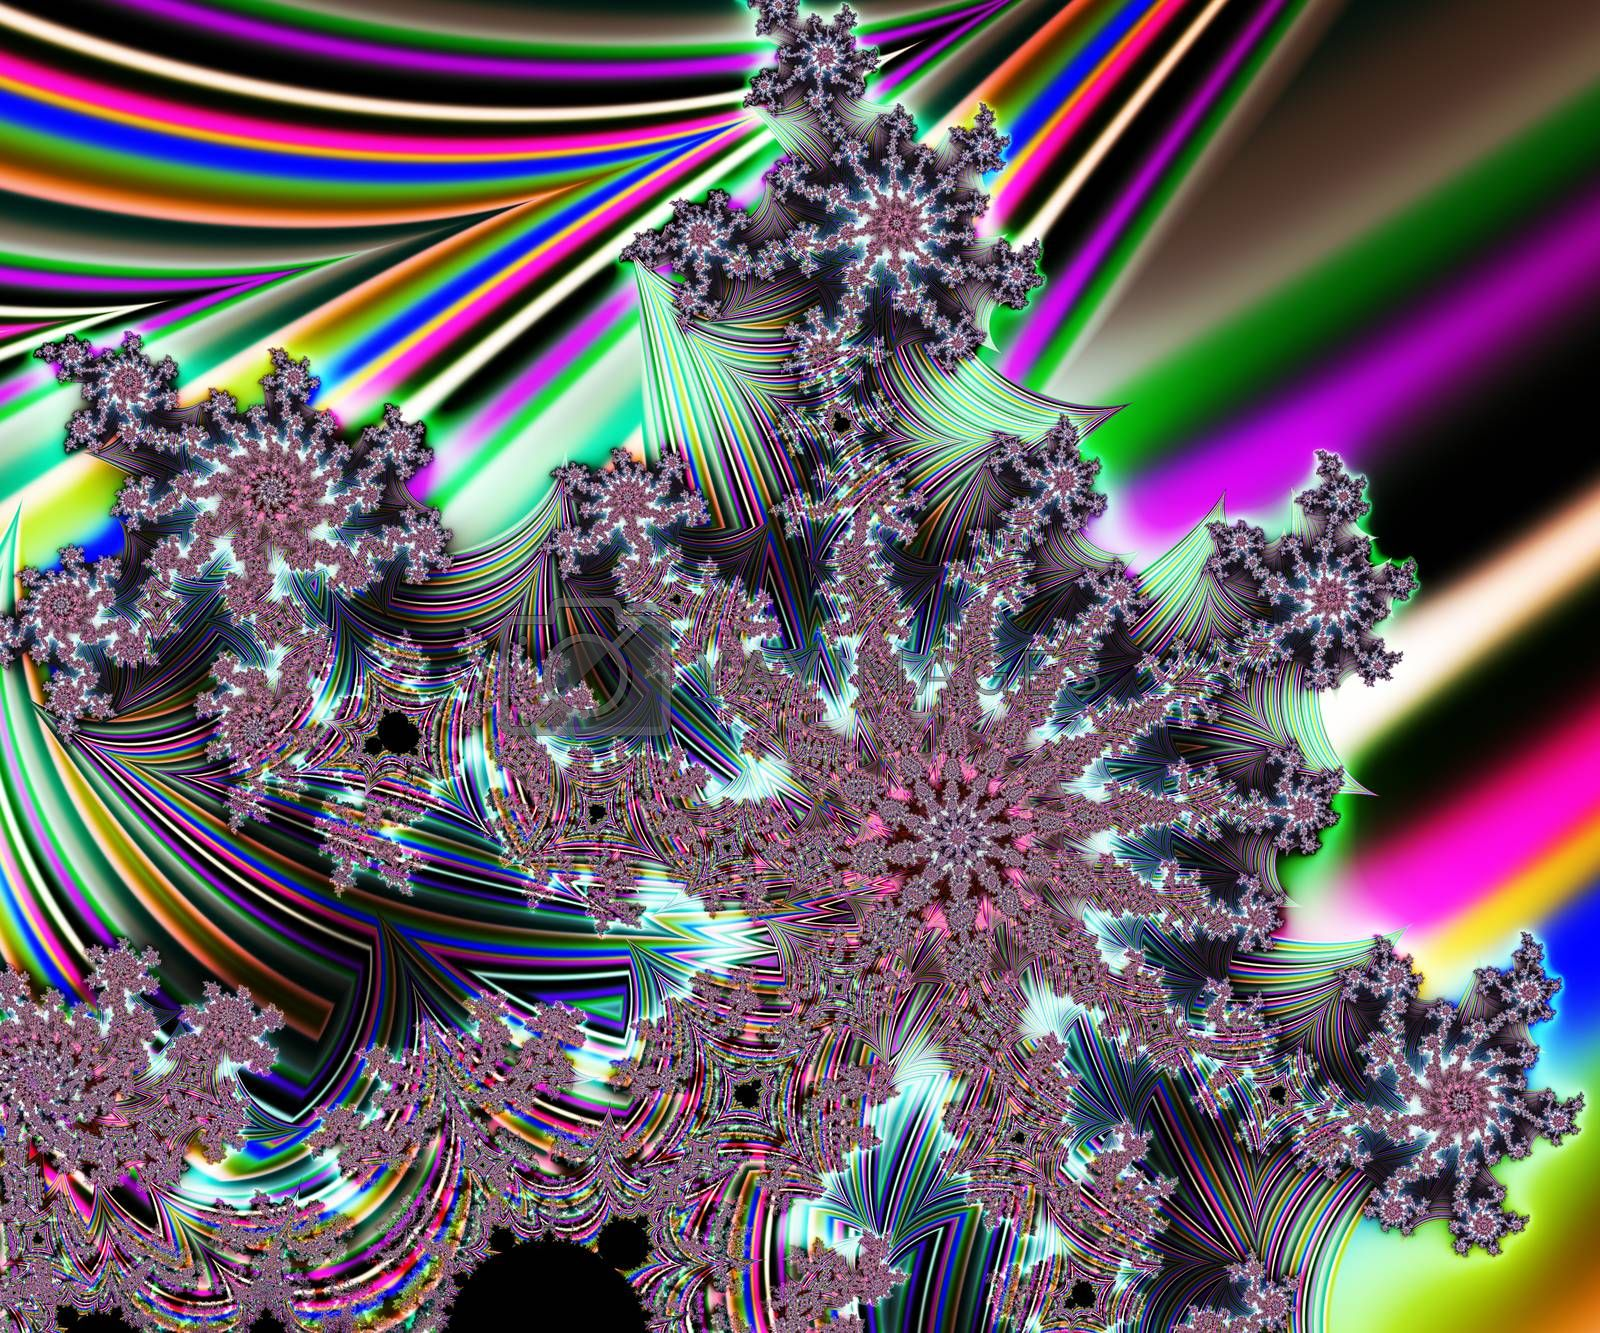 Computer generated abstract colorful fractal artwork for creative design, art, home decoration, entertainment, and mobile and PC screen wallpaper